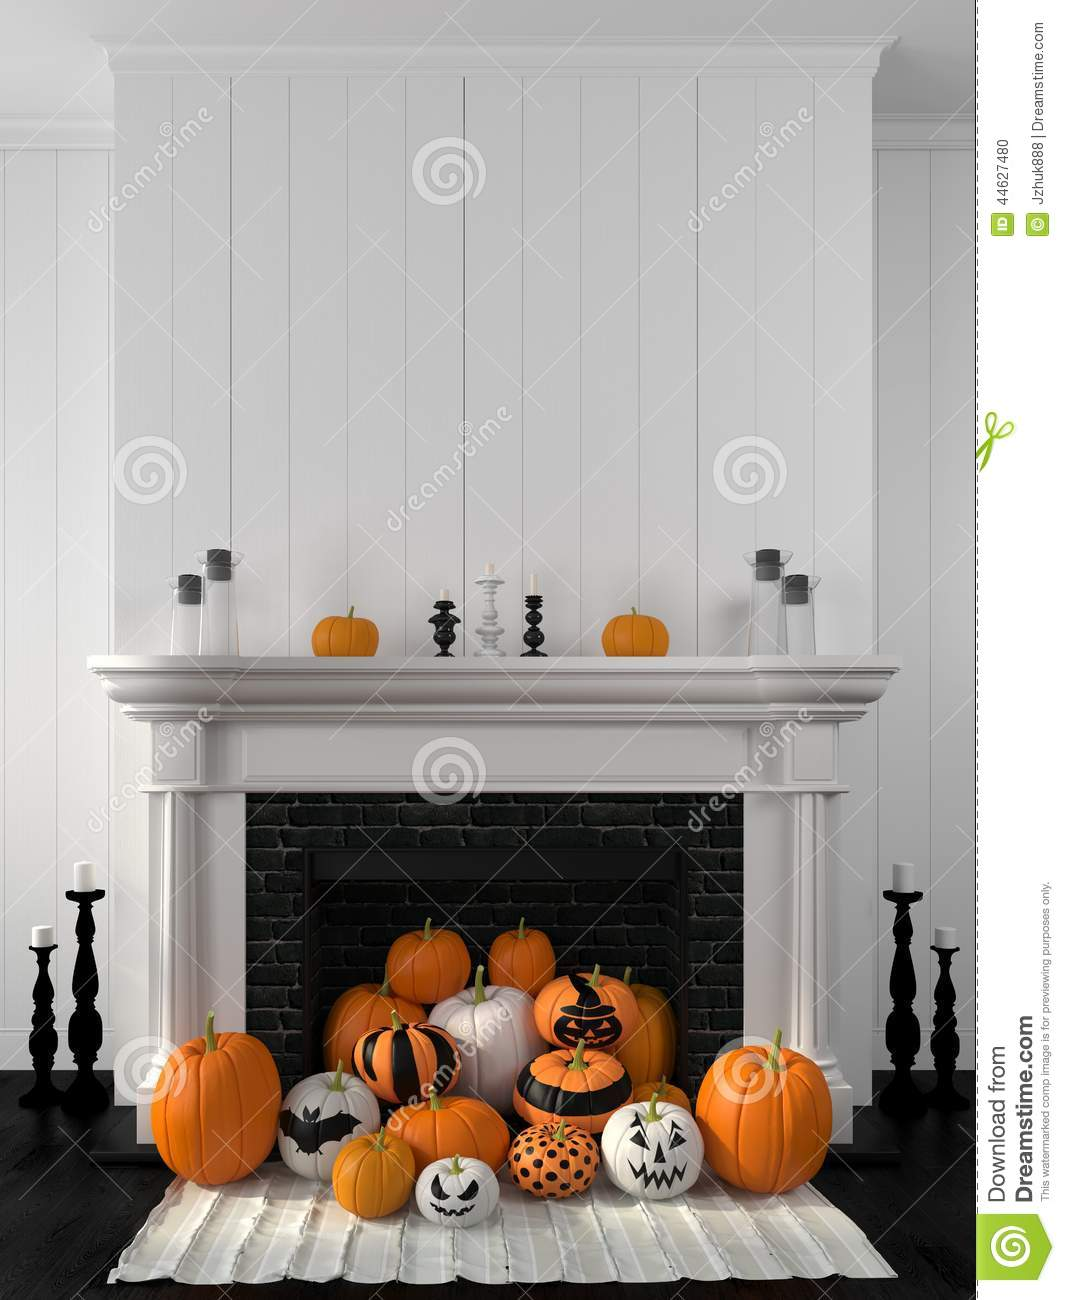 Fall White Pumpkins Wallpaper White Fireplace Decorated With Pumpkins For Halloween